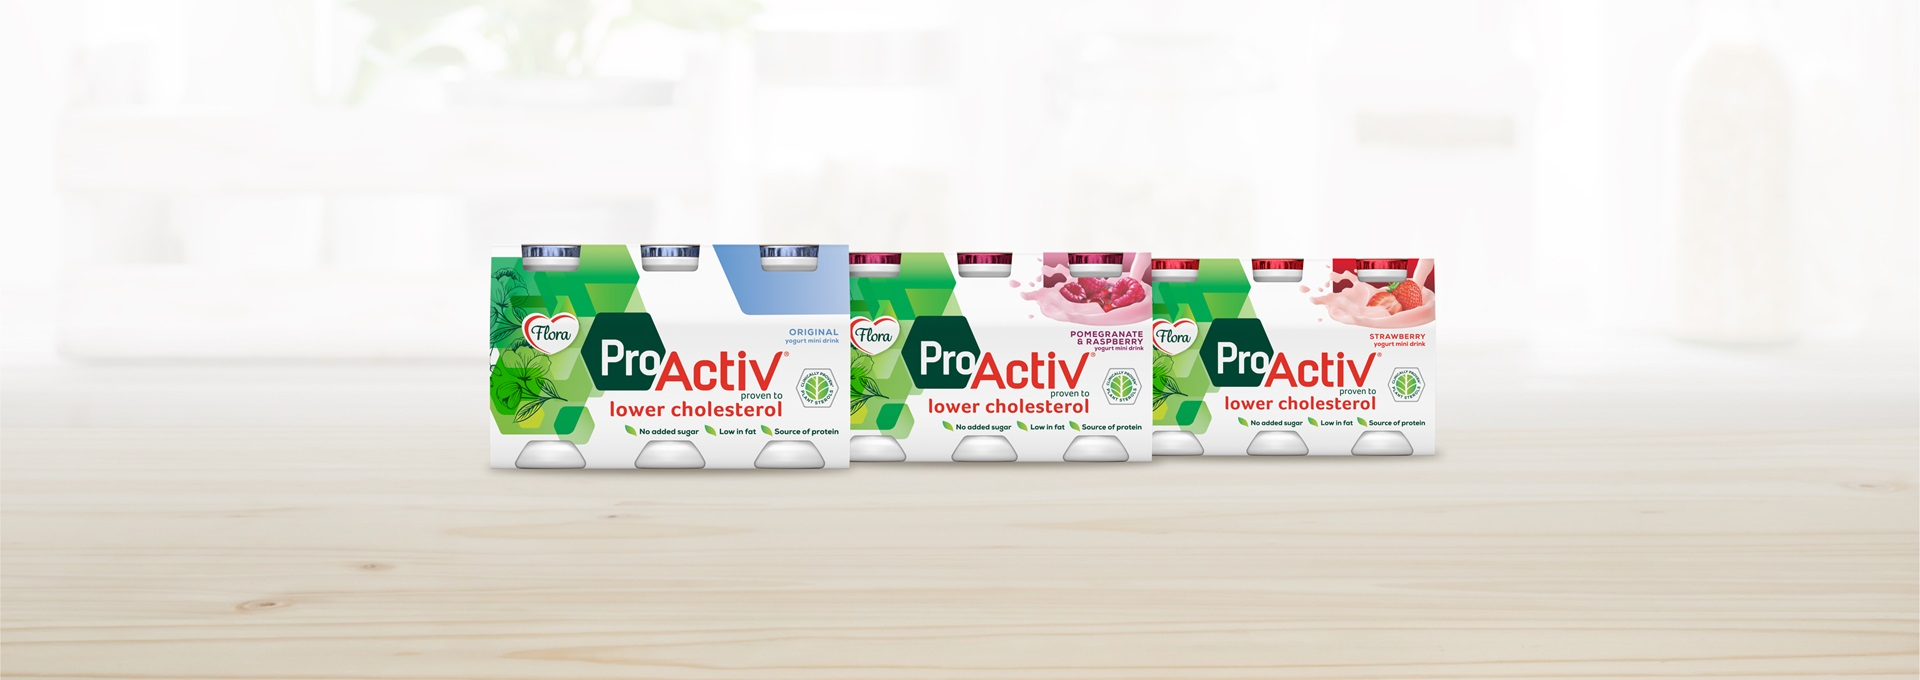 Flora proactiv drinks